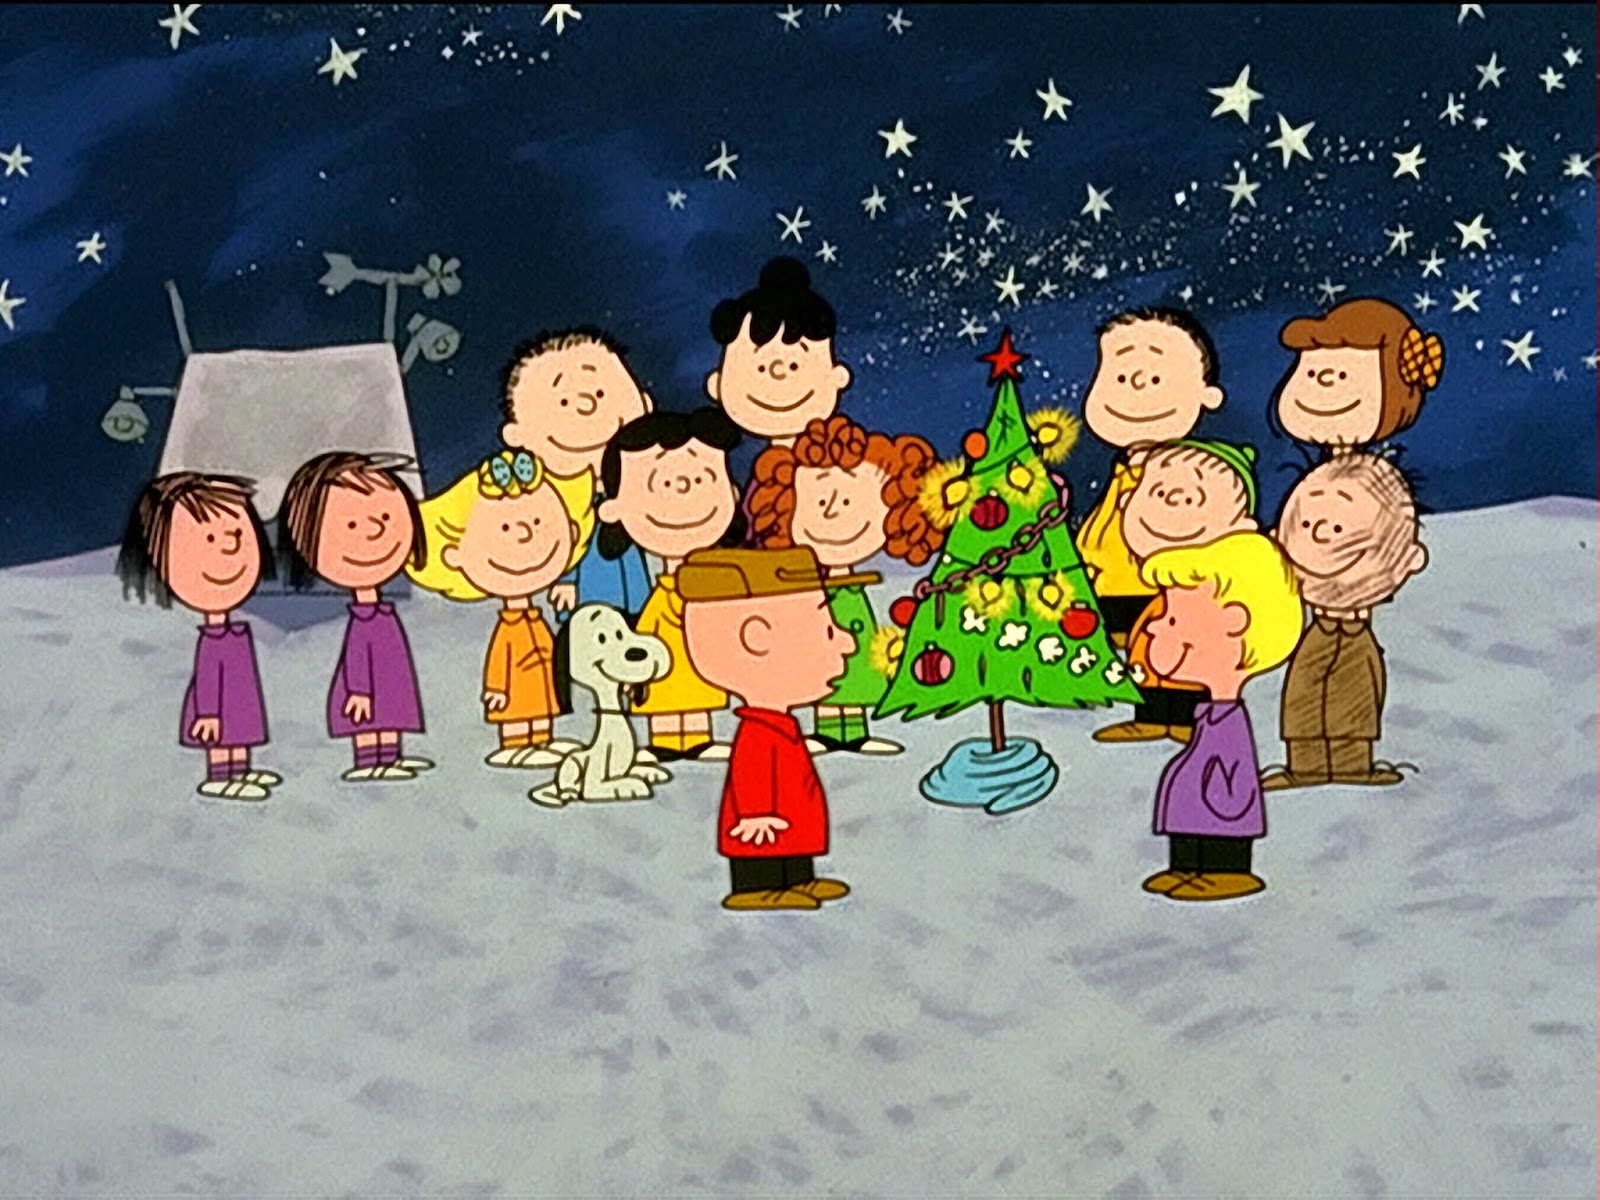 http://catalog.syossetlibrary.org/search?/tcharlie+brown+christmas/tcharlie+brown+christmas/1%2C3%2C5%2CB/frameset&FF=tcharlie+brown+christmas&2%2C%2C3